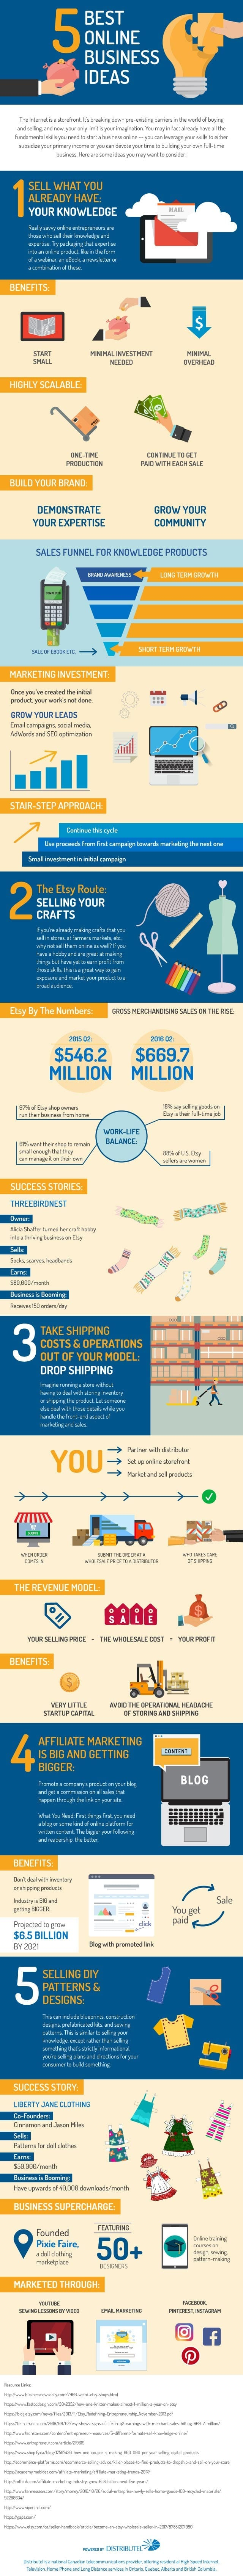 online business ideas infographic